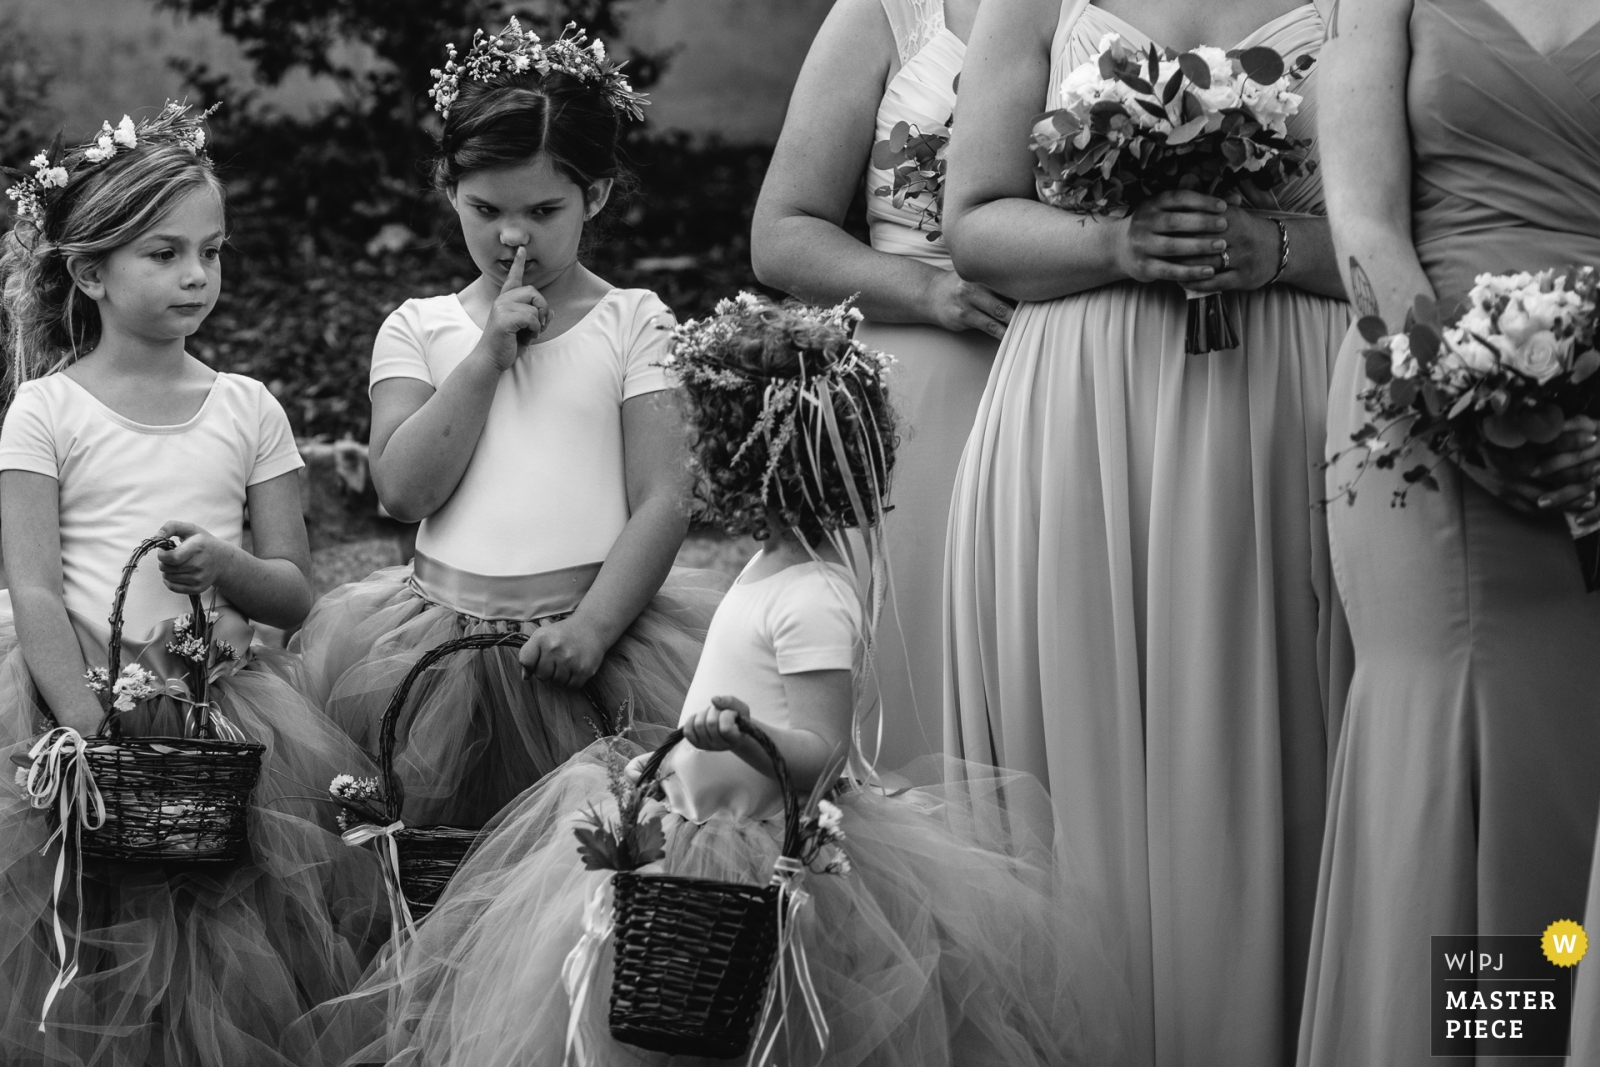 One flower girl shushes another during the ceremony. - Lake Tahoe, California - Northern Wedding Photography -  | Haue Valley: Pacific, Missouri